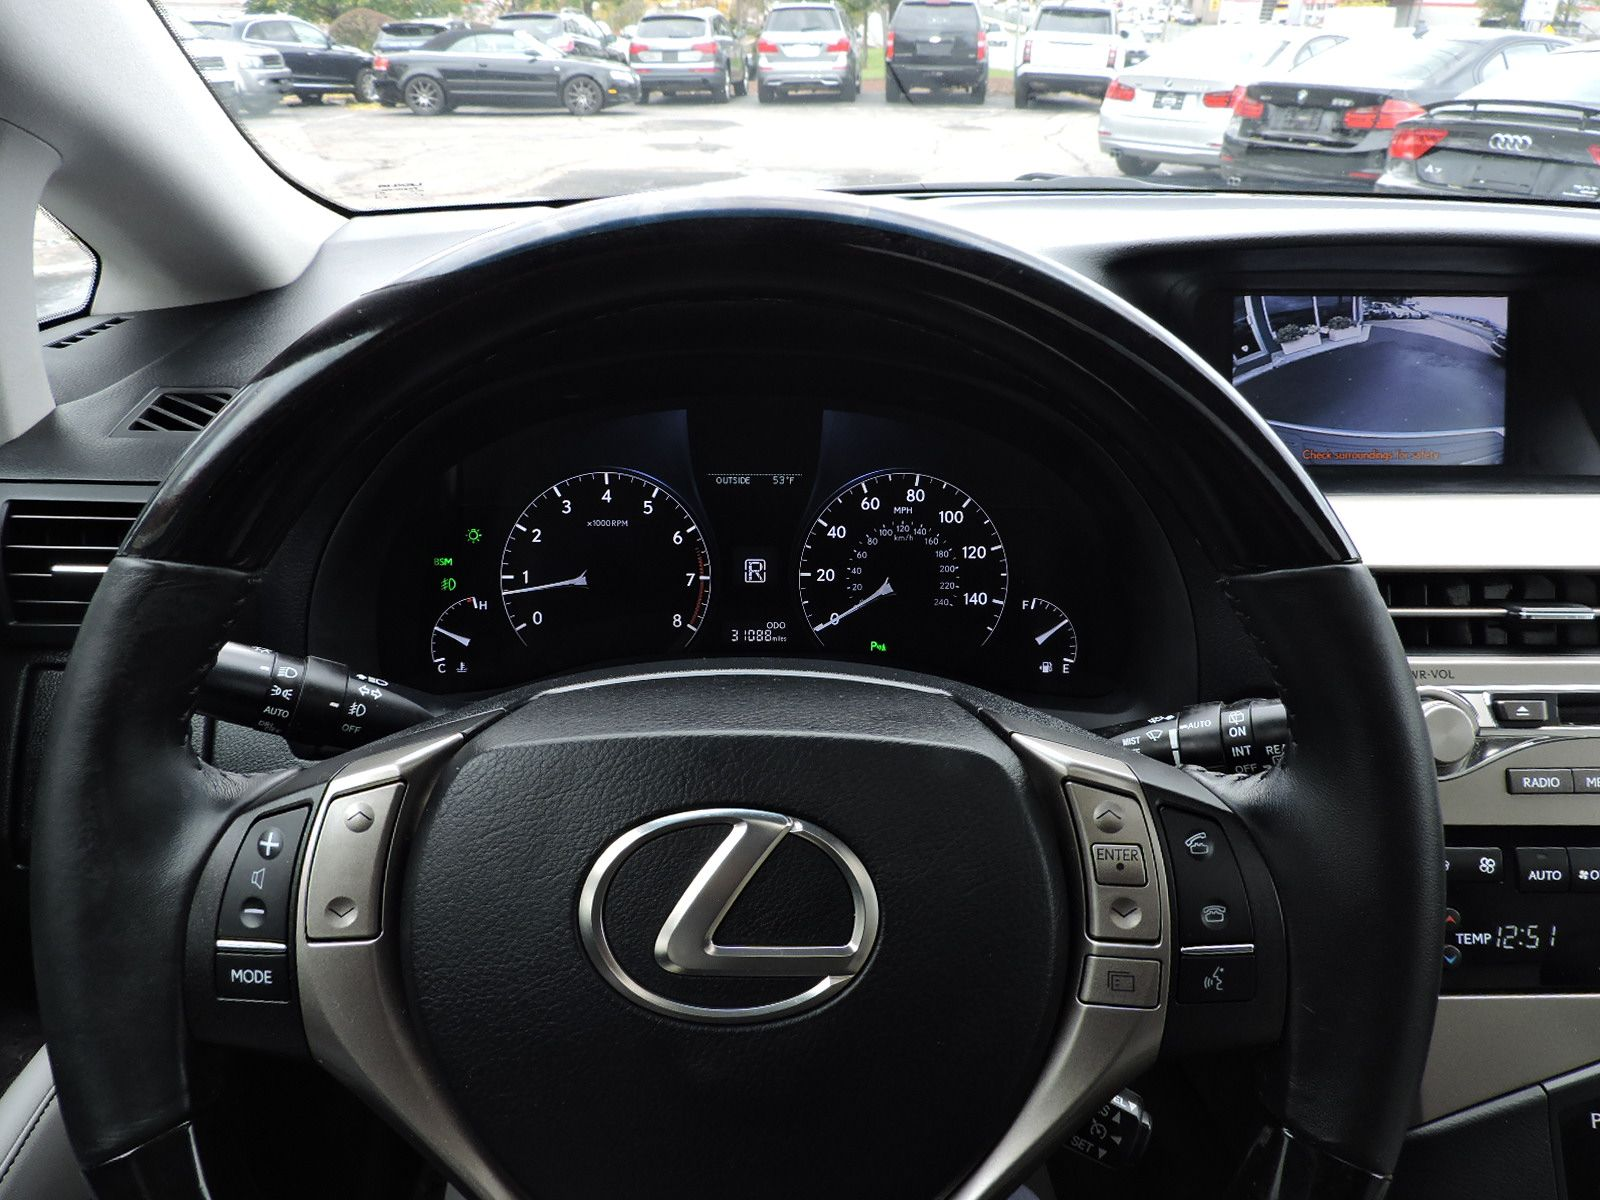 2013 Lexus RX 350 AWD - Low Mileage